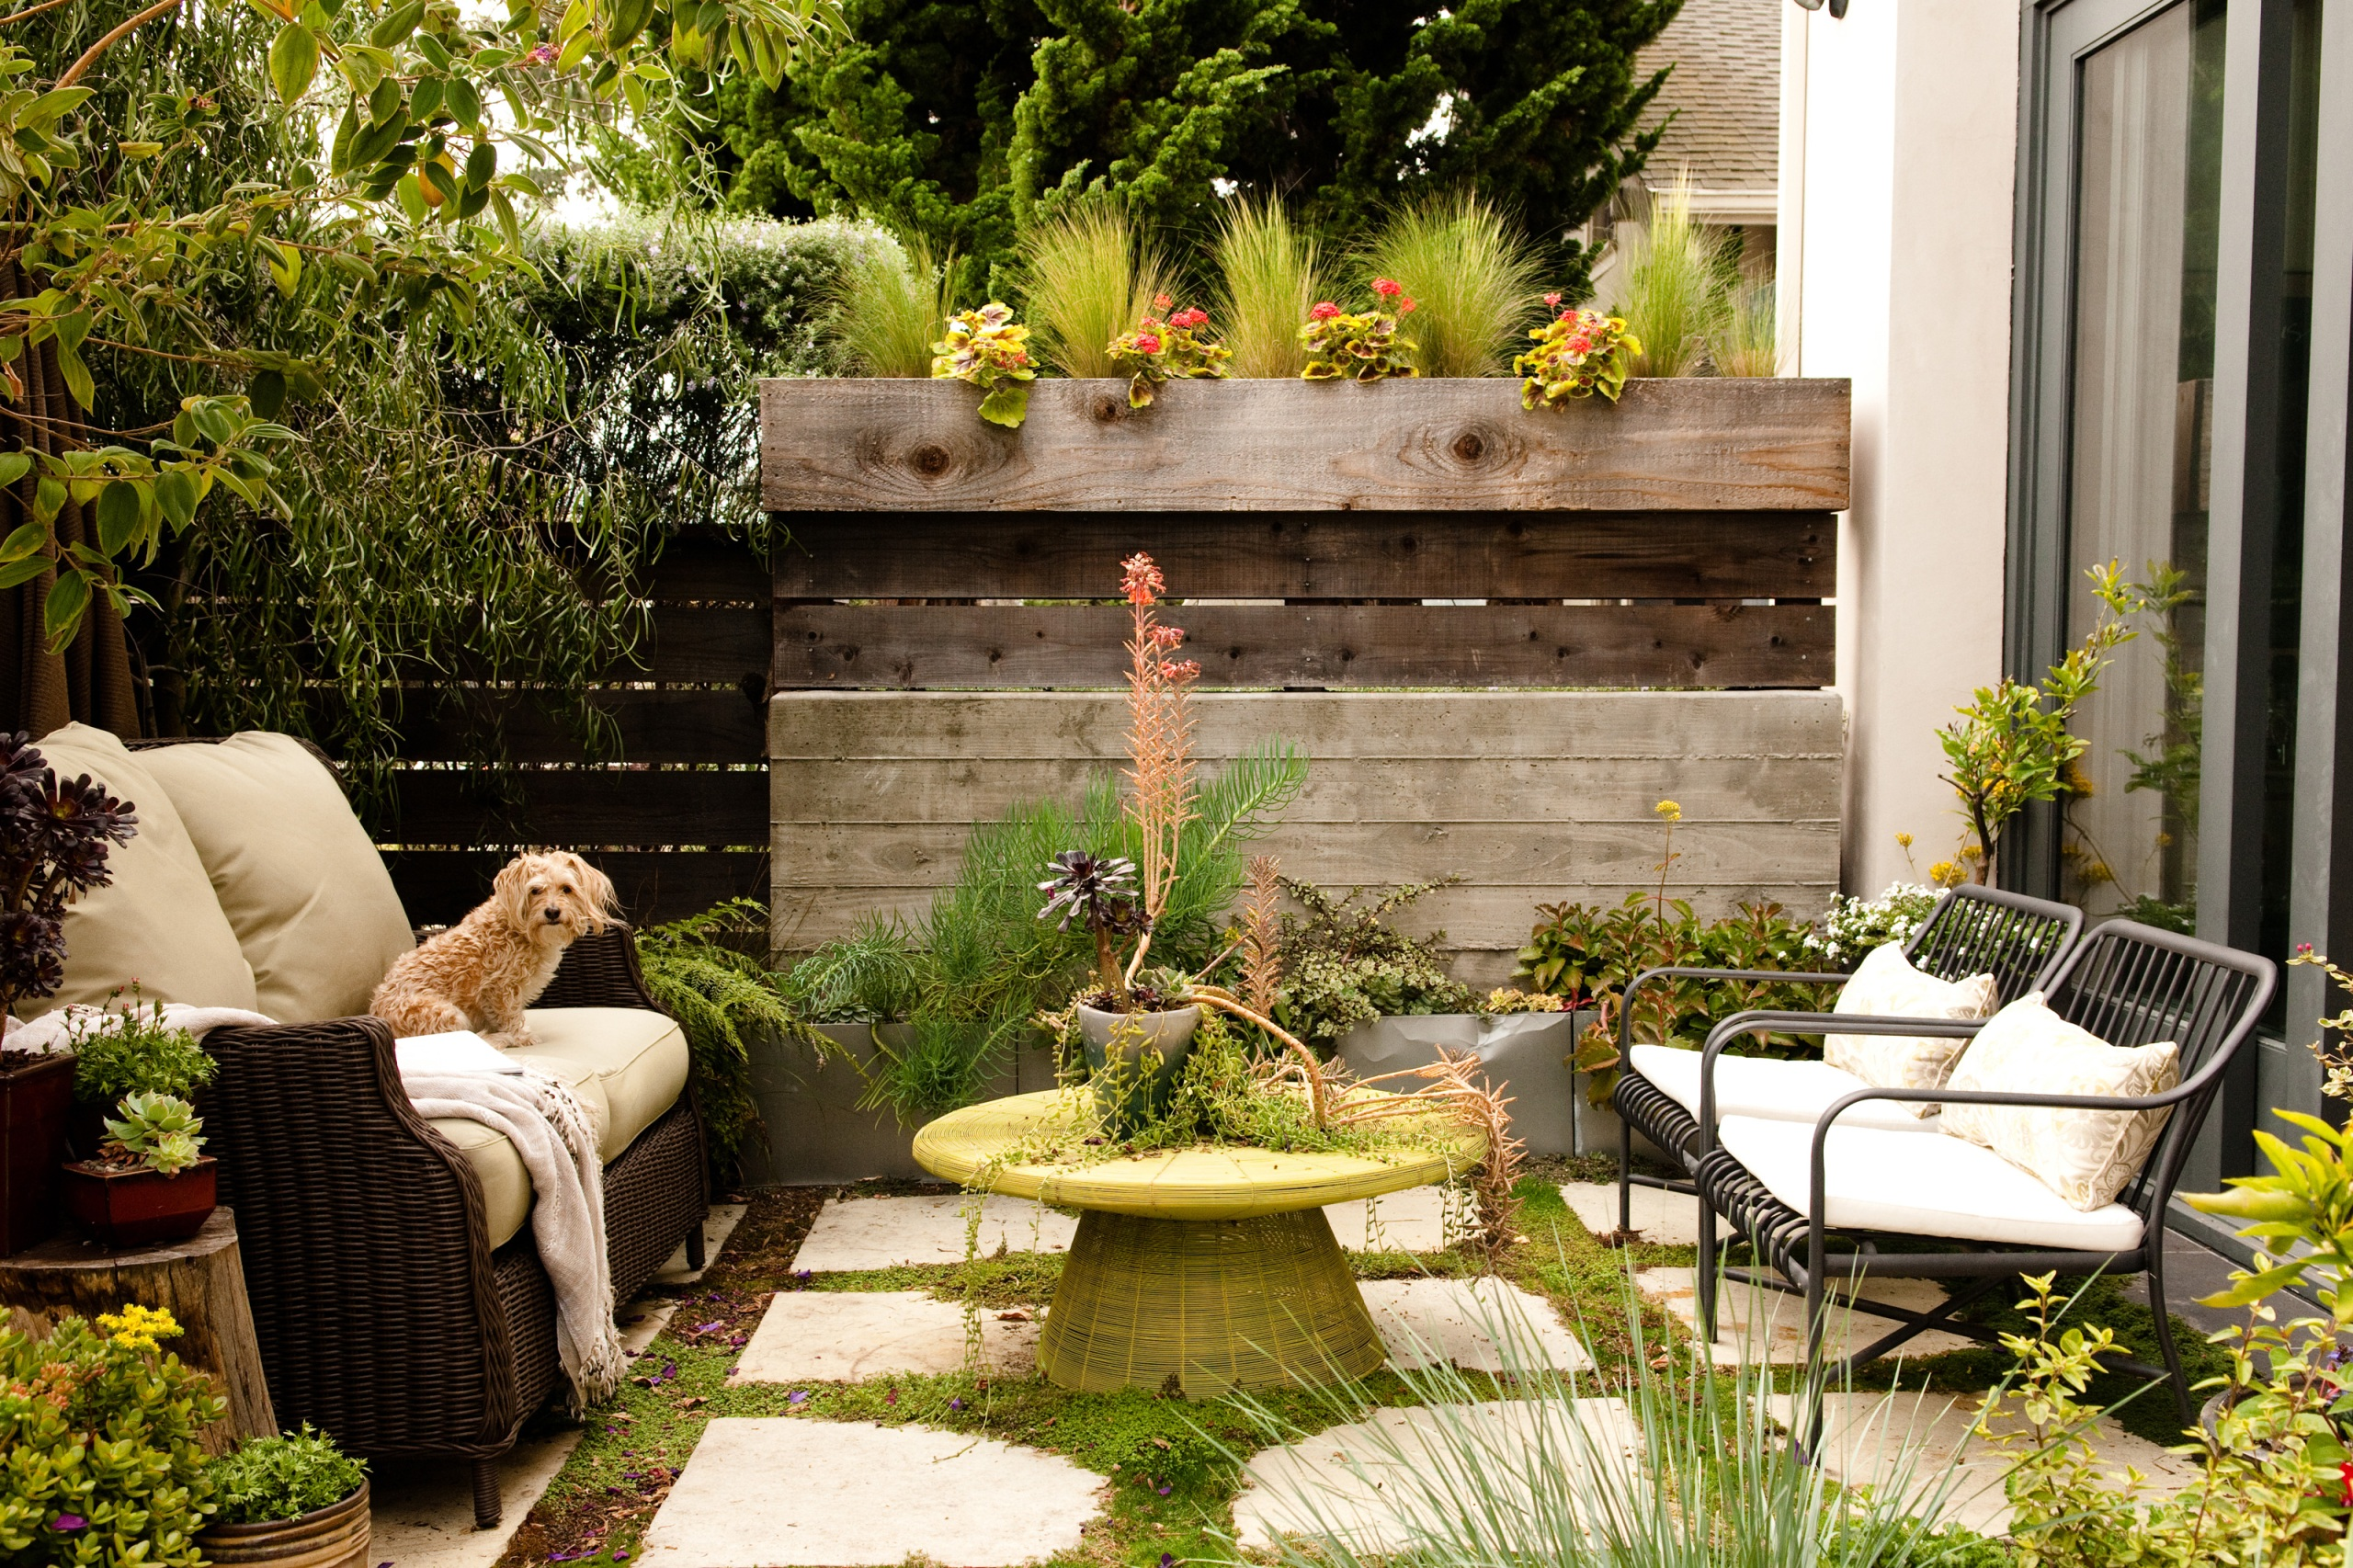 Small Backyard Ideas | How To Make a Small Space Look Bigger on Small Backyard Renovations id=63988